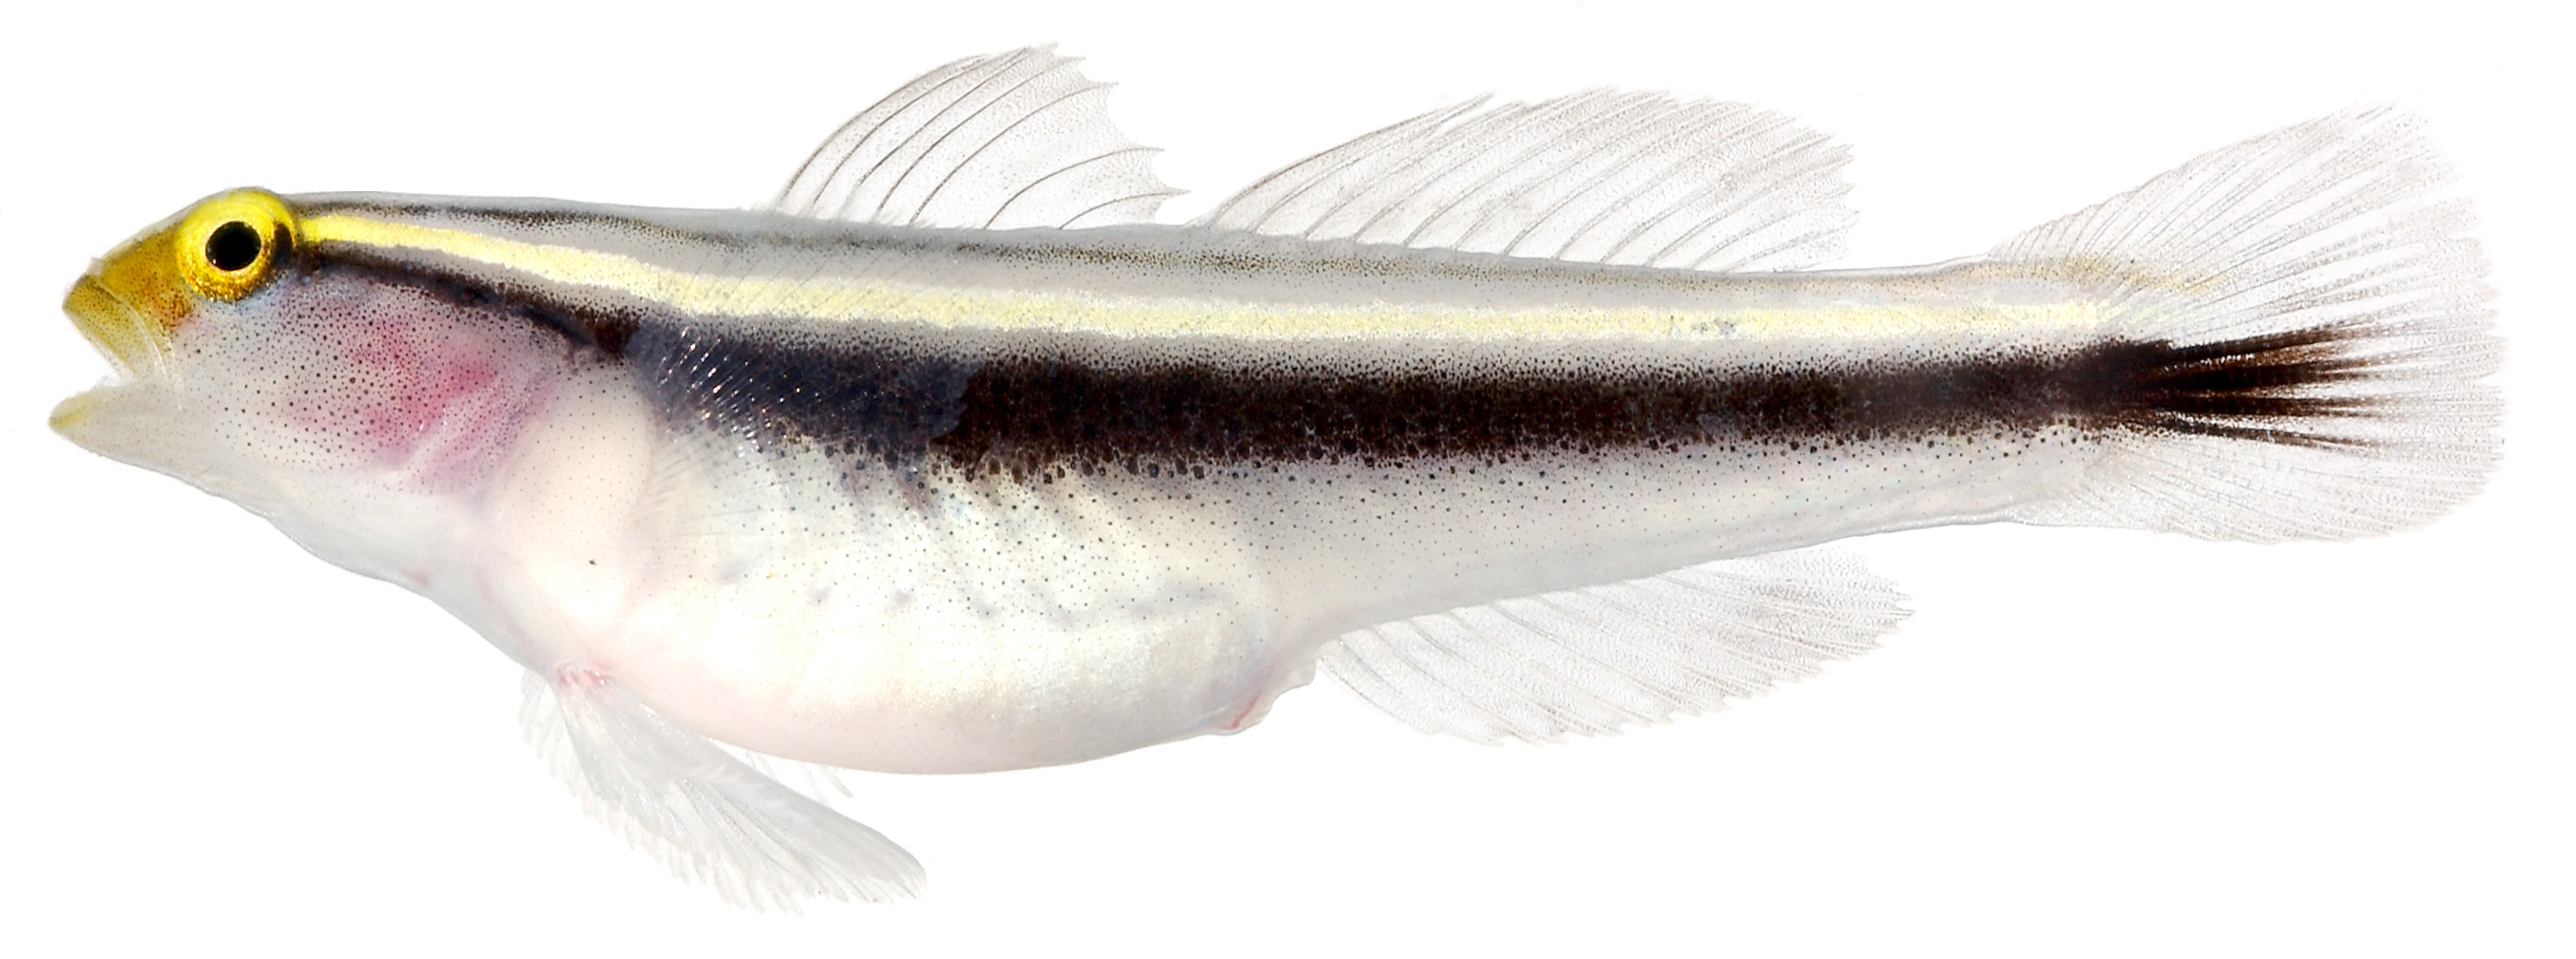 Image of Yellowprow goby